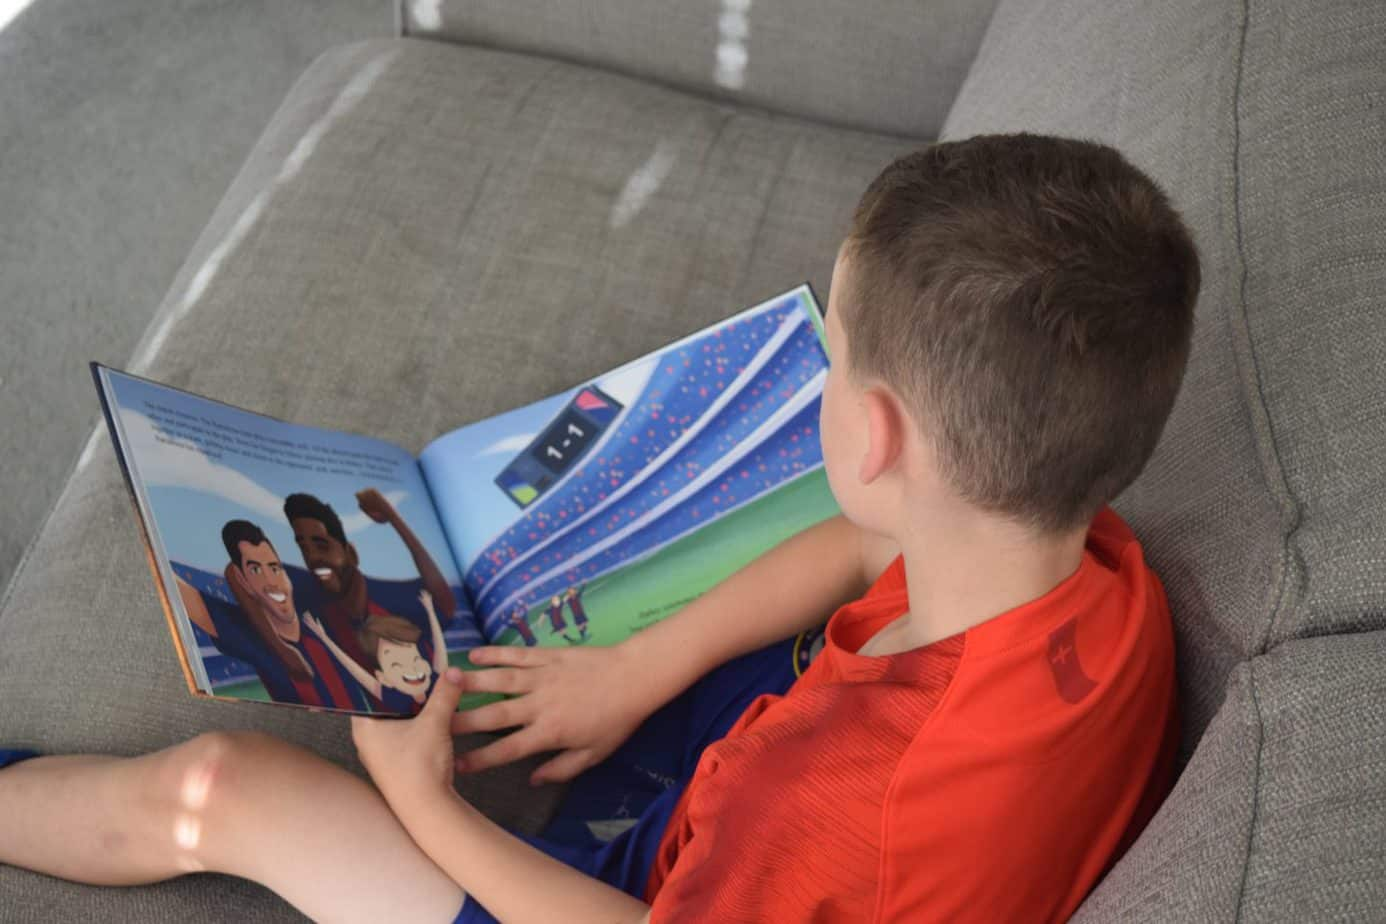 B reading the Barcelona FC personalised football book